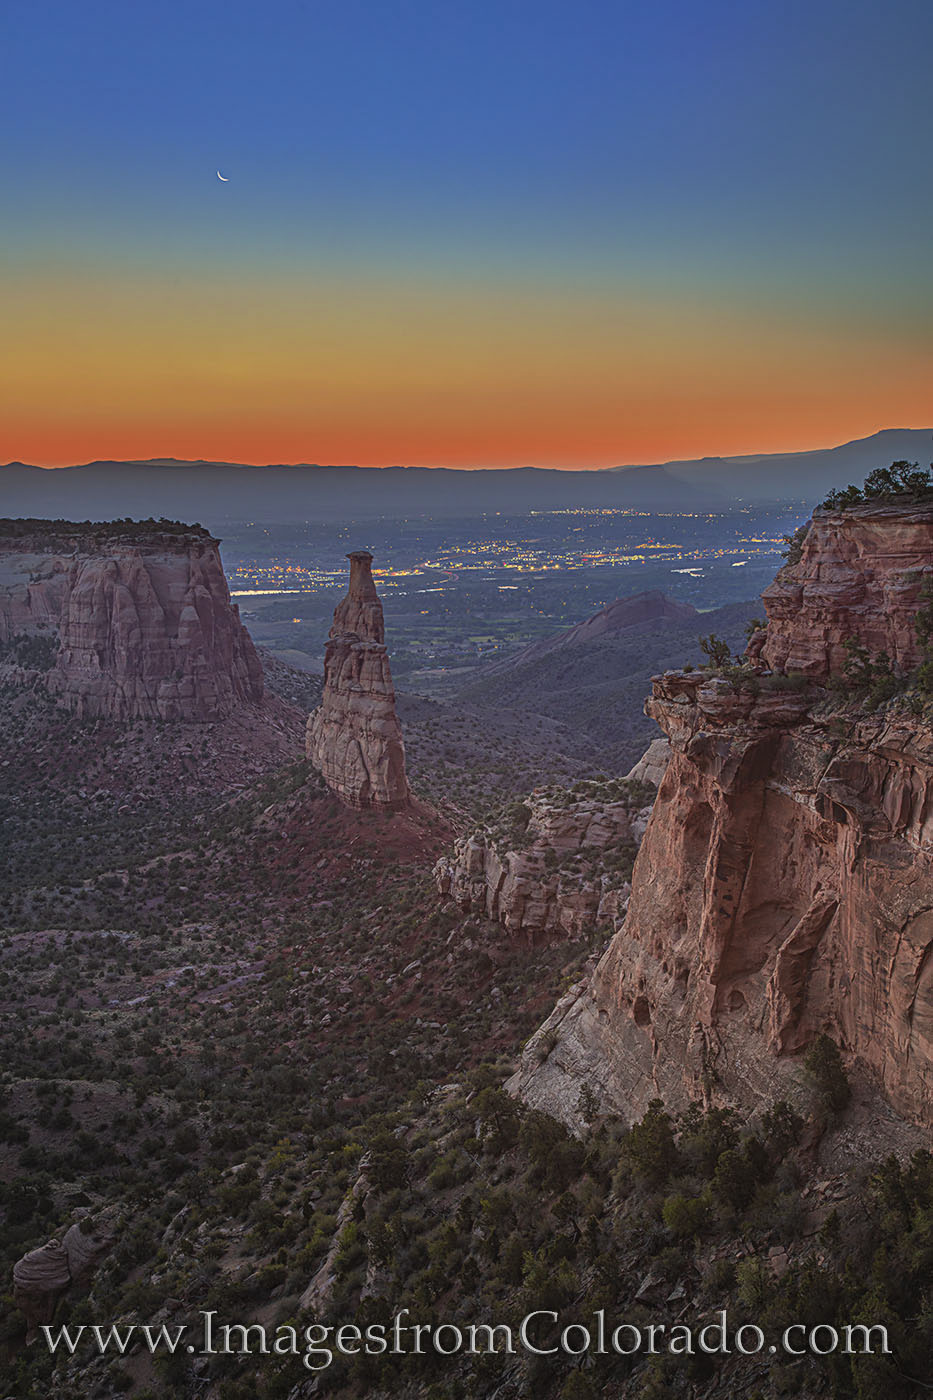 independence monument, grand junction, crescent moon, colorado national monument, colorado monument, canyon, monument canyon, rim rock road, fruita, colorado parks, sunrise, photo